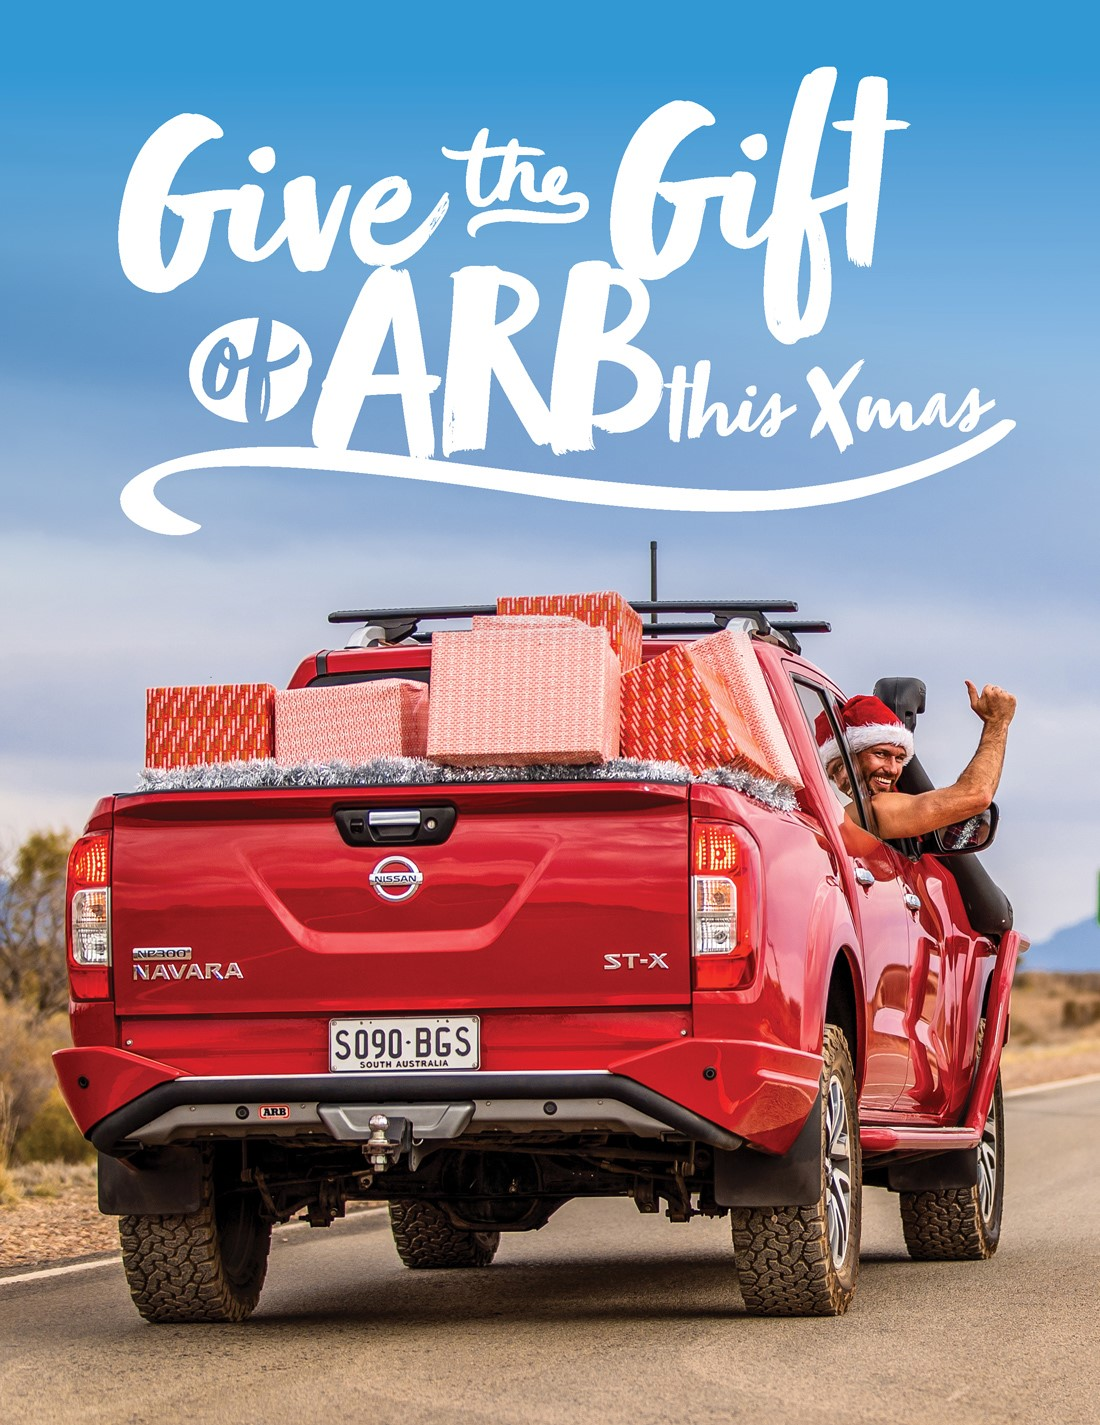 Give the gift of ARB